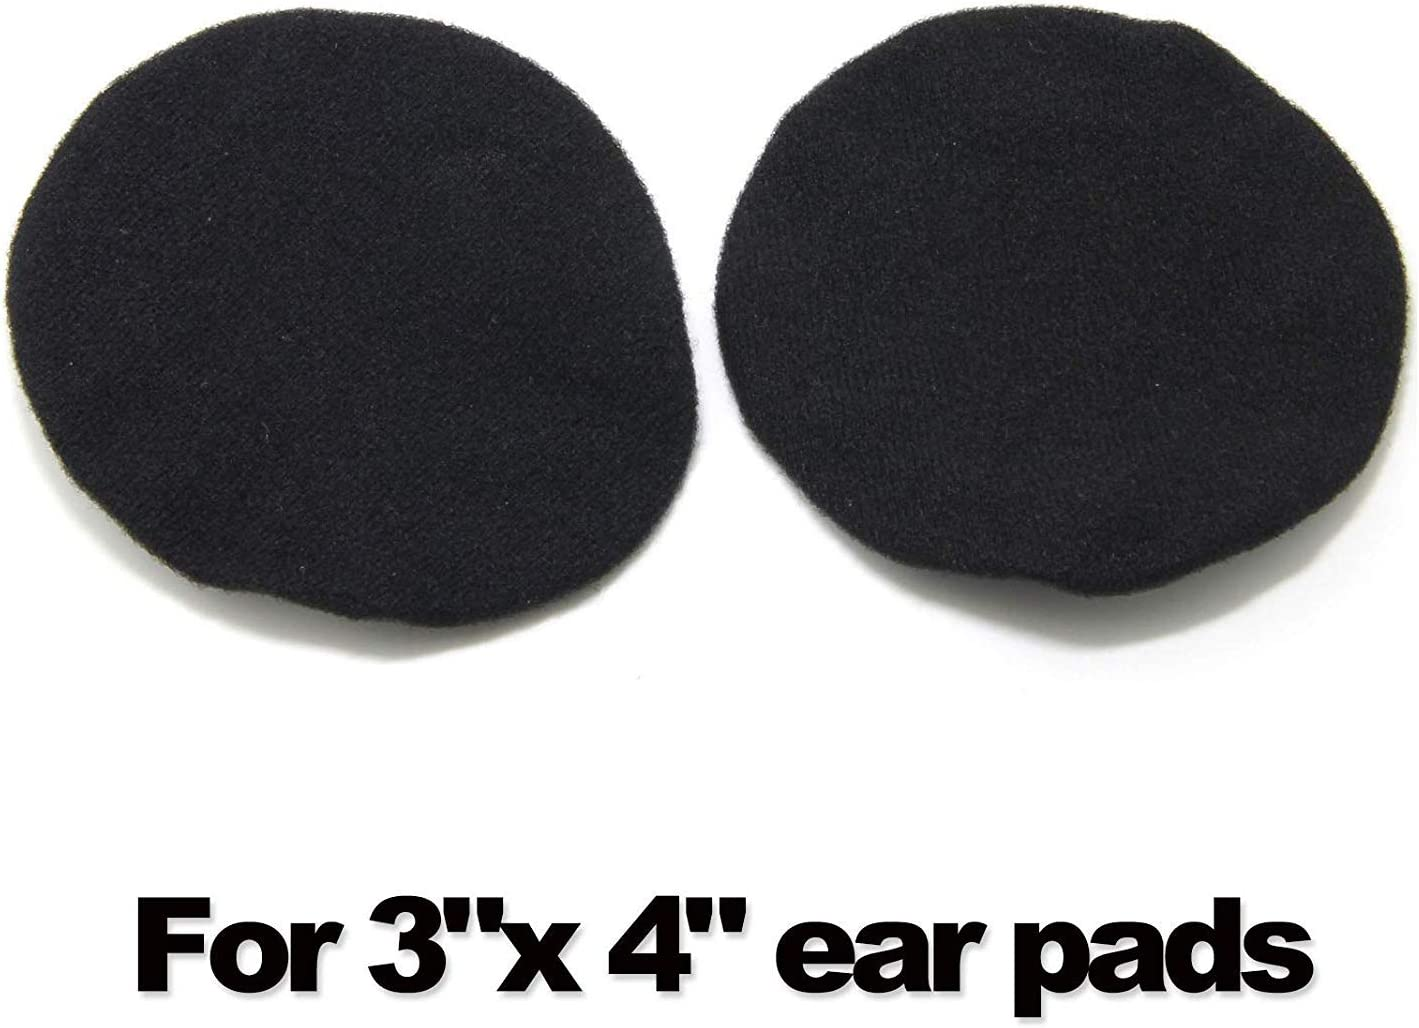 Black Headphone Covers Racing Ancable 2-Pairs Washable Flex Headset Earpad Cloth Cover for Gym Training Gaming Aviation etc More Over The Ear Headphones